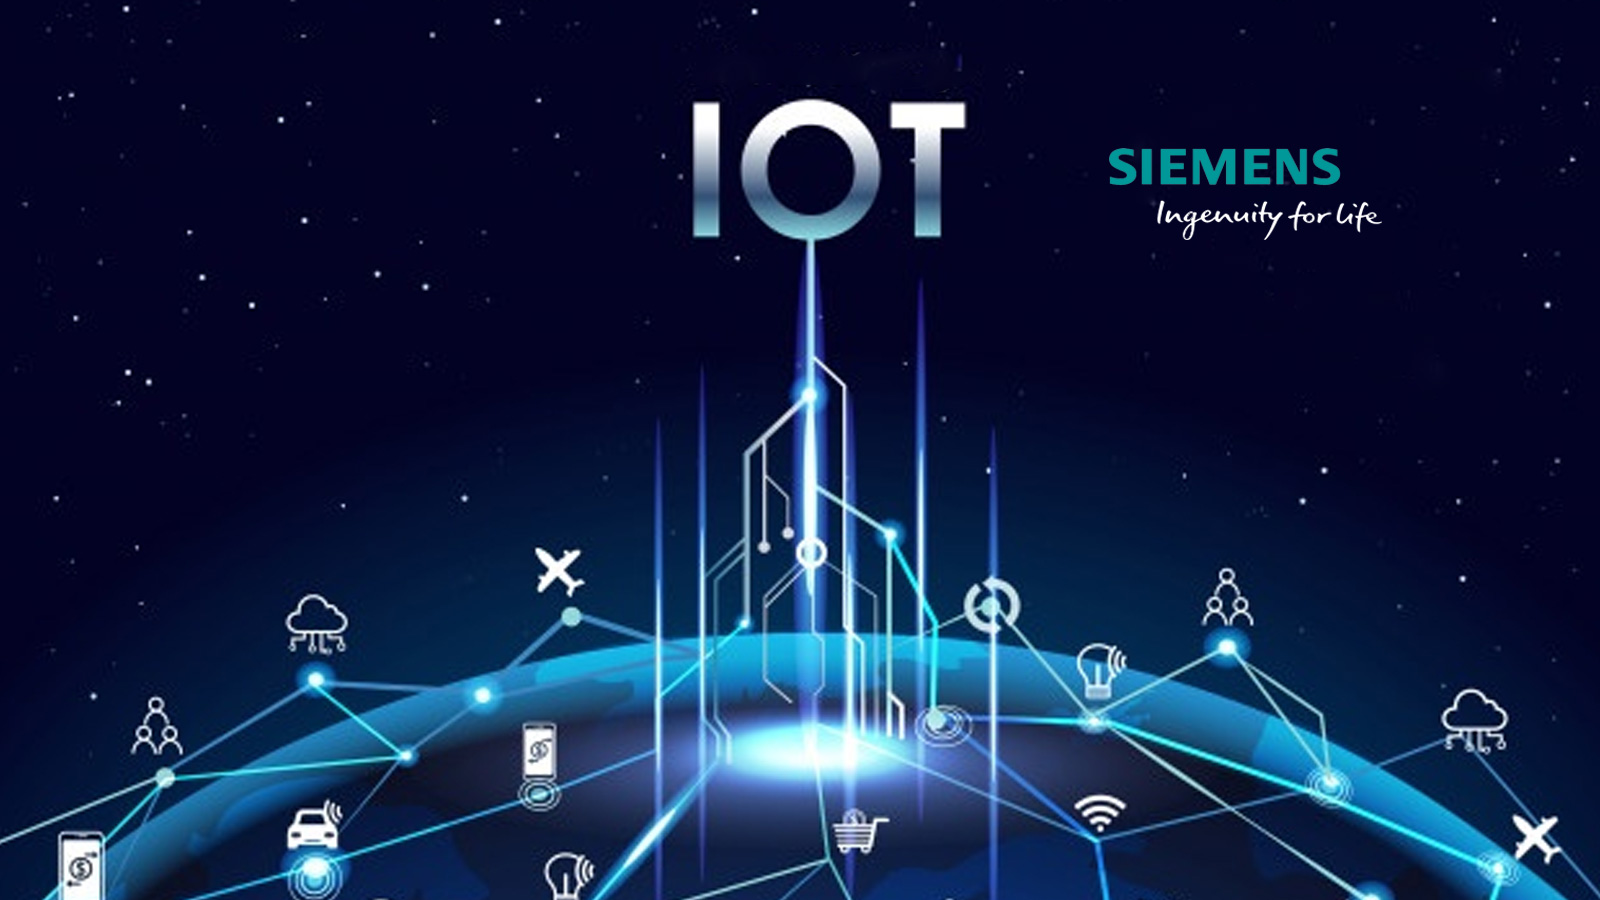 Siemens-MindSphere-on-Alibaba-Cloud-ready-to-power-the-Industrial-Internet-of-Things-in-China